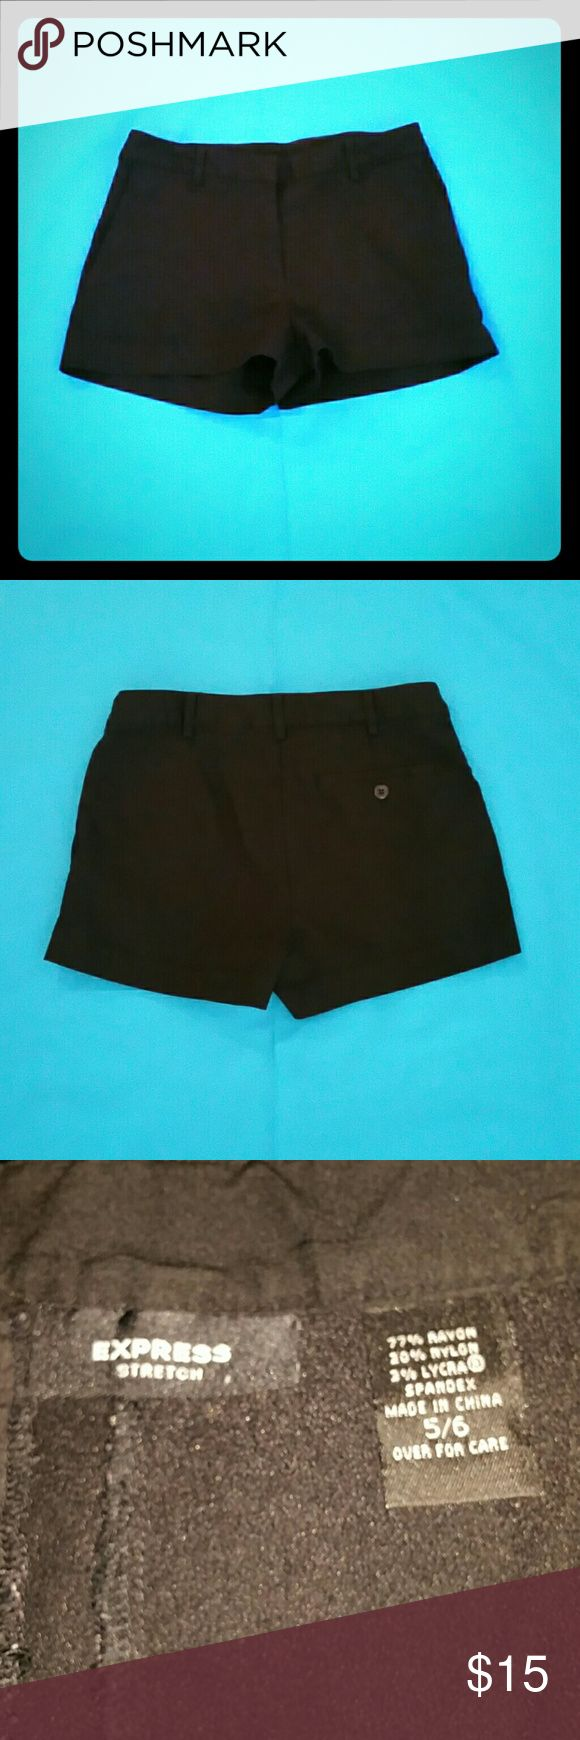 Express, Black stretch shorts with pockets Black stretch shorts with pockets. Size 5/6 Express Shorts